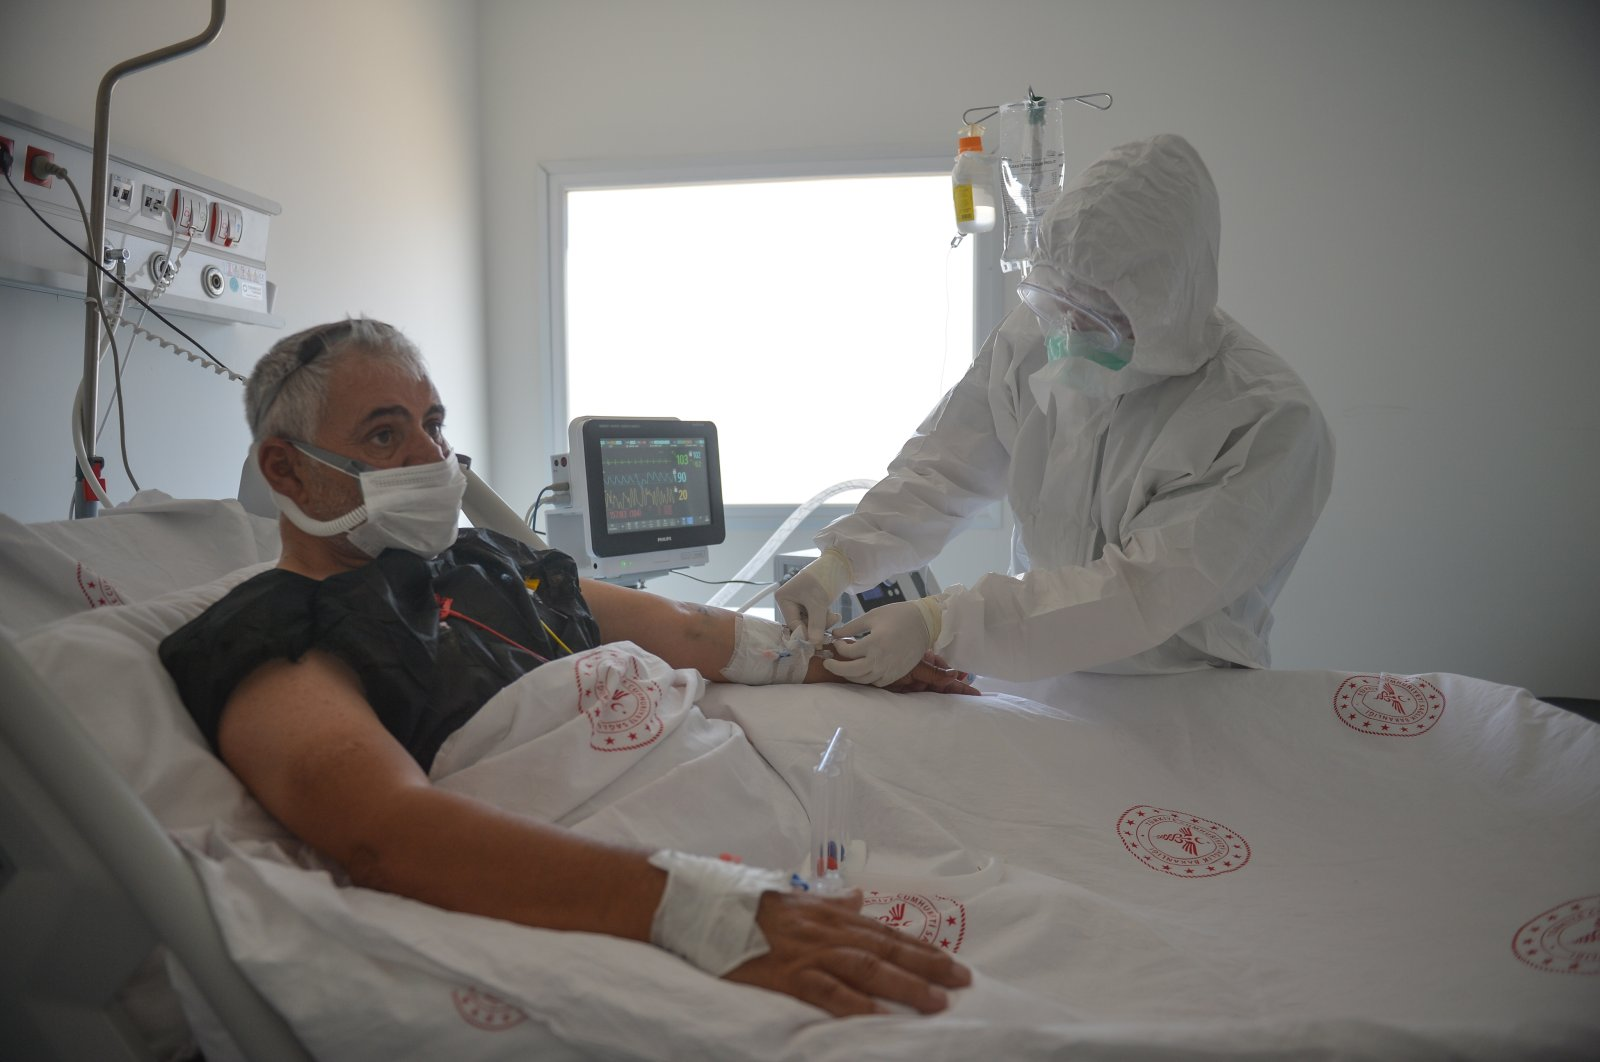 Medical staff attends to a patient at Feriha Öz Emergency Hospital set up to treat those infected with COVID-19 in Sancaktepe district, Istanbul, Turkey, Aug. 5, 2020. (DHA Photo)